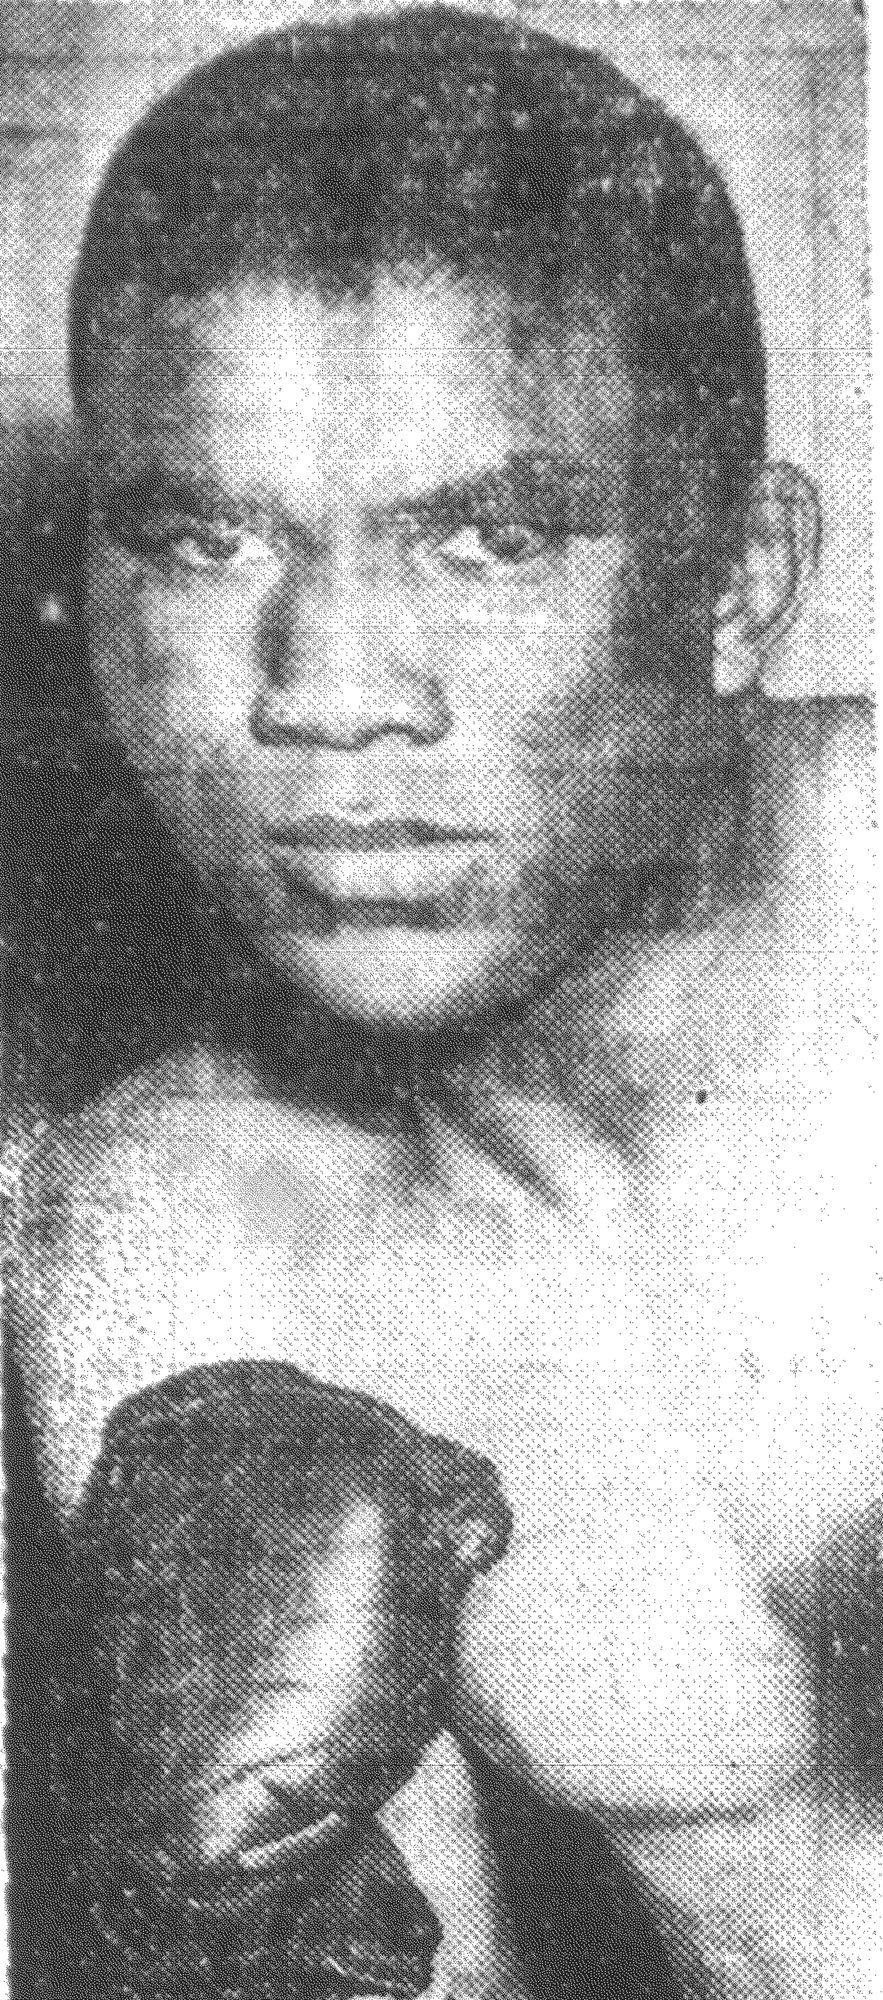 Bob Montgomery is seen in May 1943. Buster Newberry and Bob Montgomery both brought boxing fame to South Carolina with their wins in the ring. Newberry began boxing in the early 1920s, while Montgomery began his boxing career in 1943. Newberry was born in Florida and came to Sumter as a title holder, while Montgomery was born in Sumter and began his career in Philadelphia.